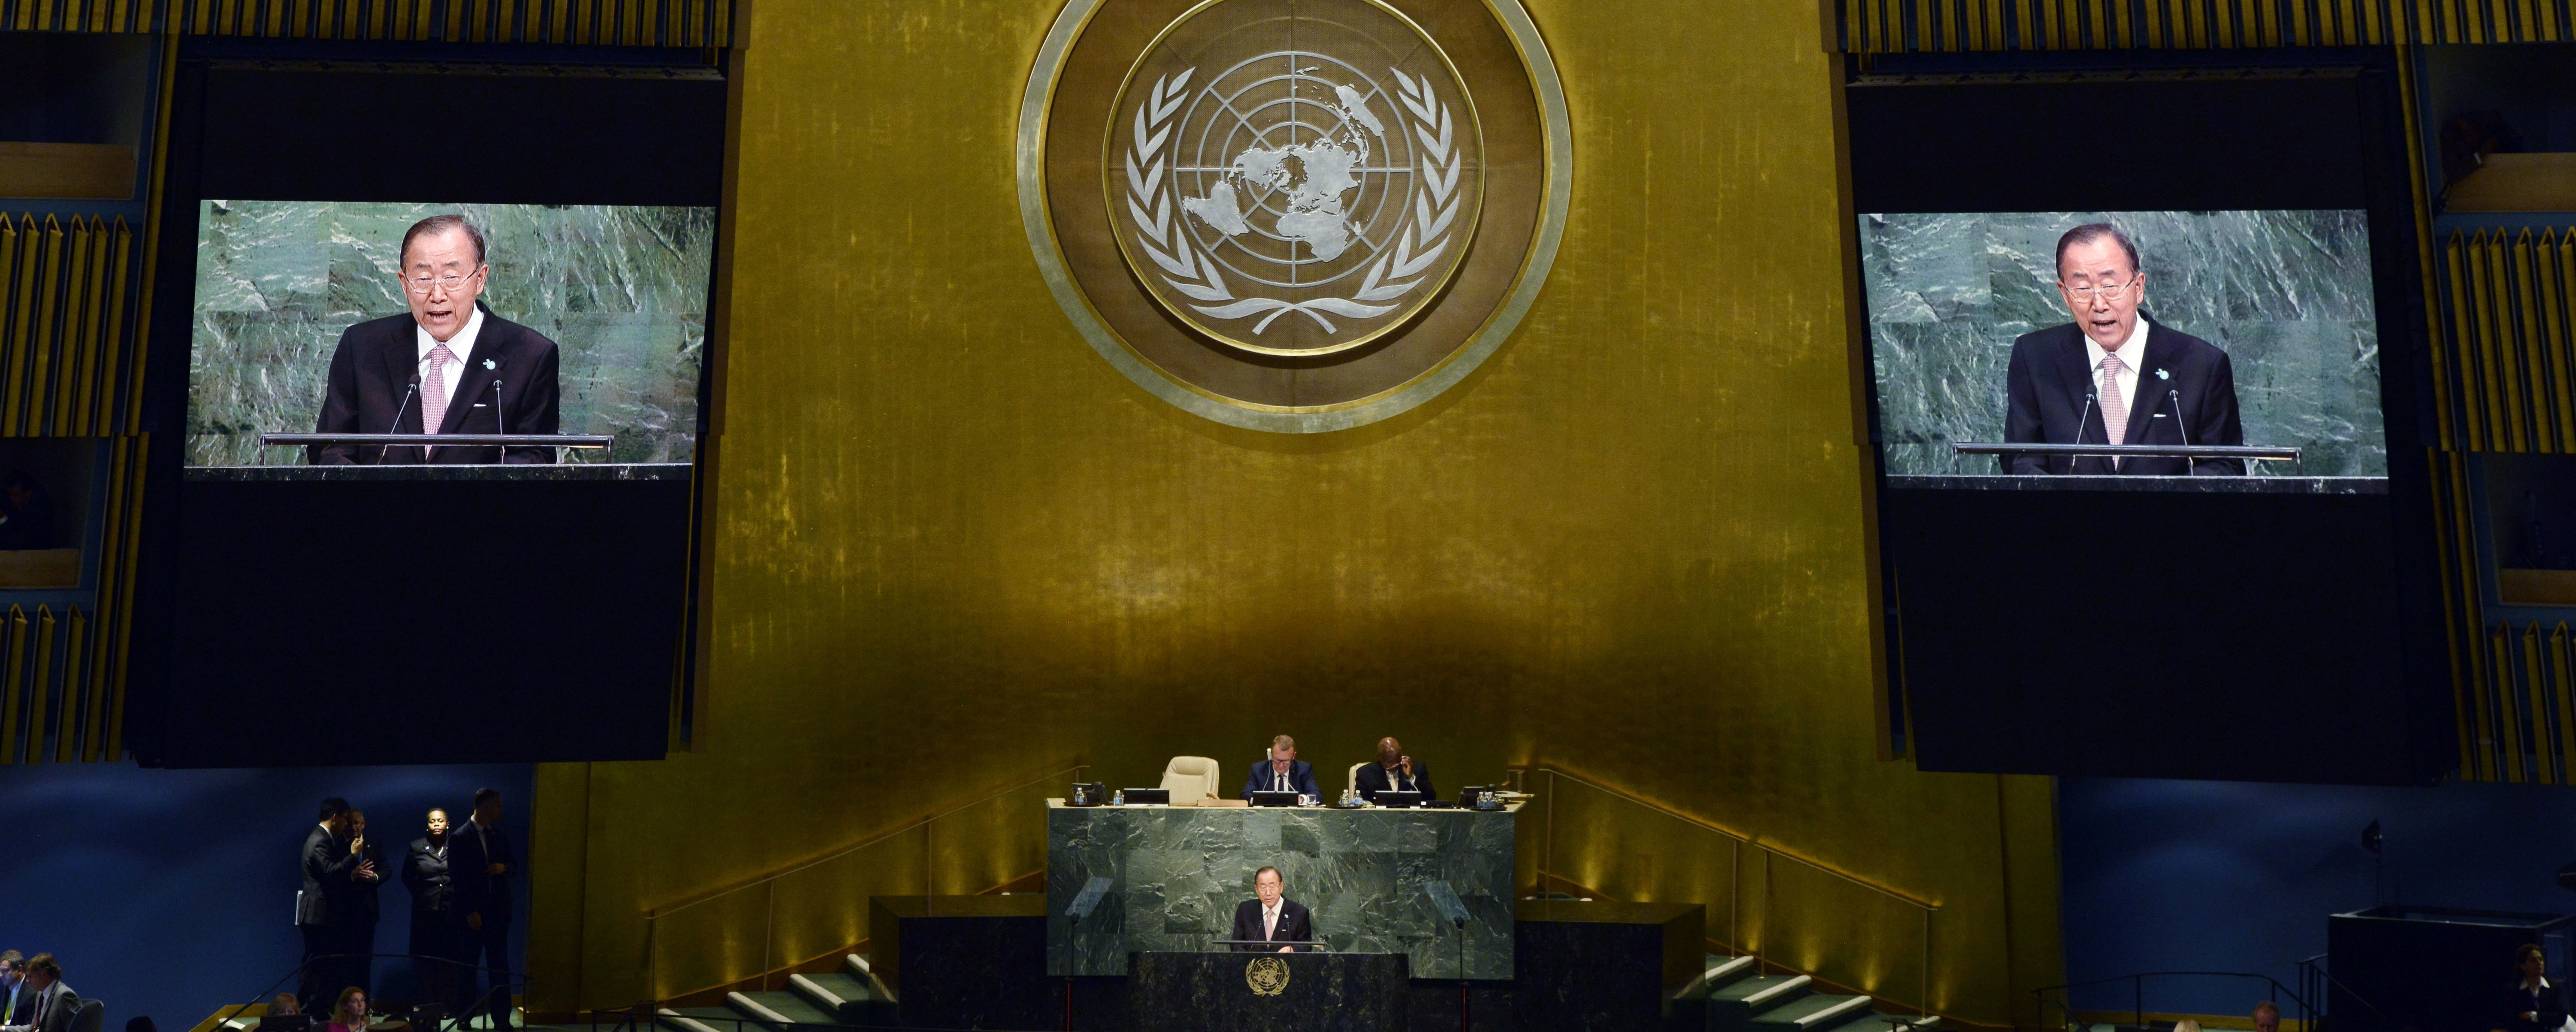 These Are the Goals the UN Set to Combat Poverty and Address Climate Change